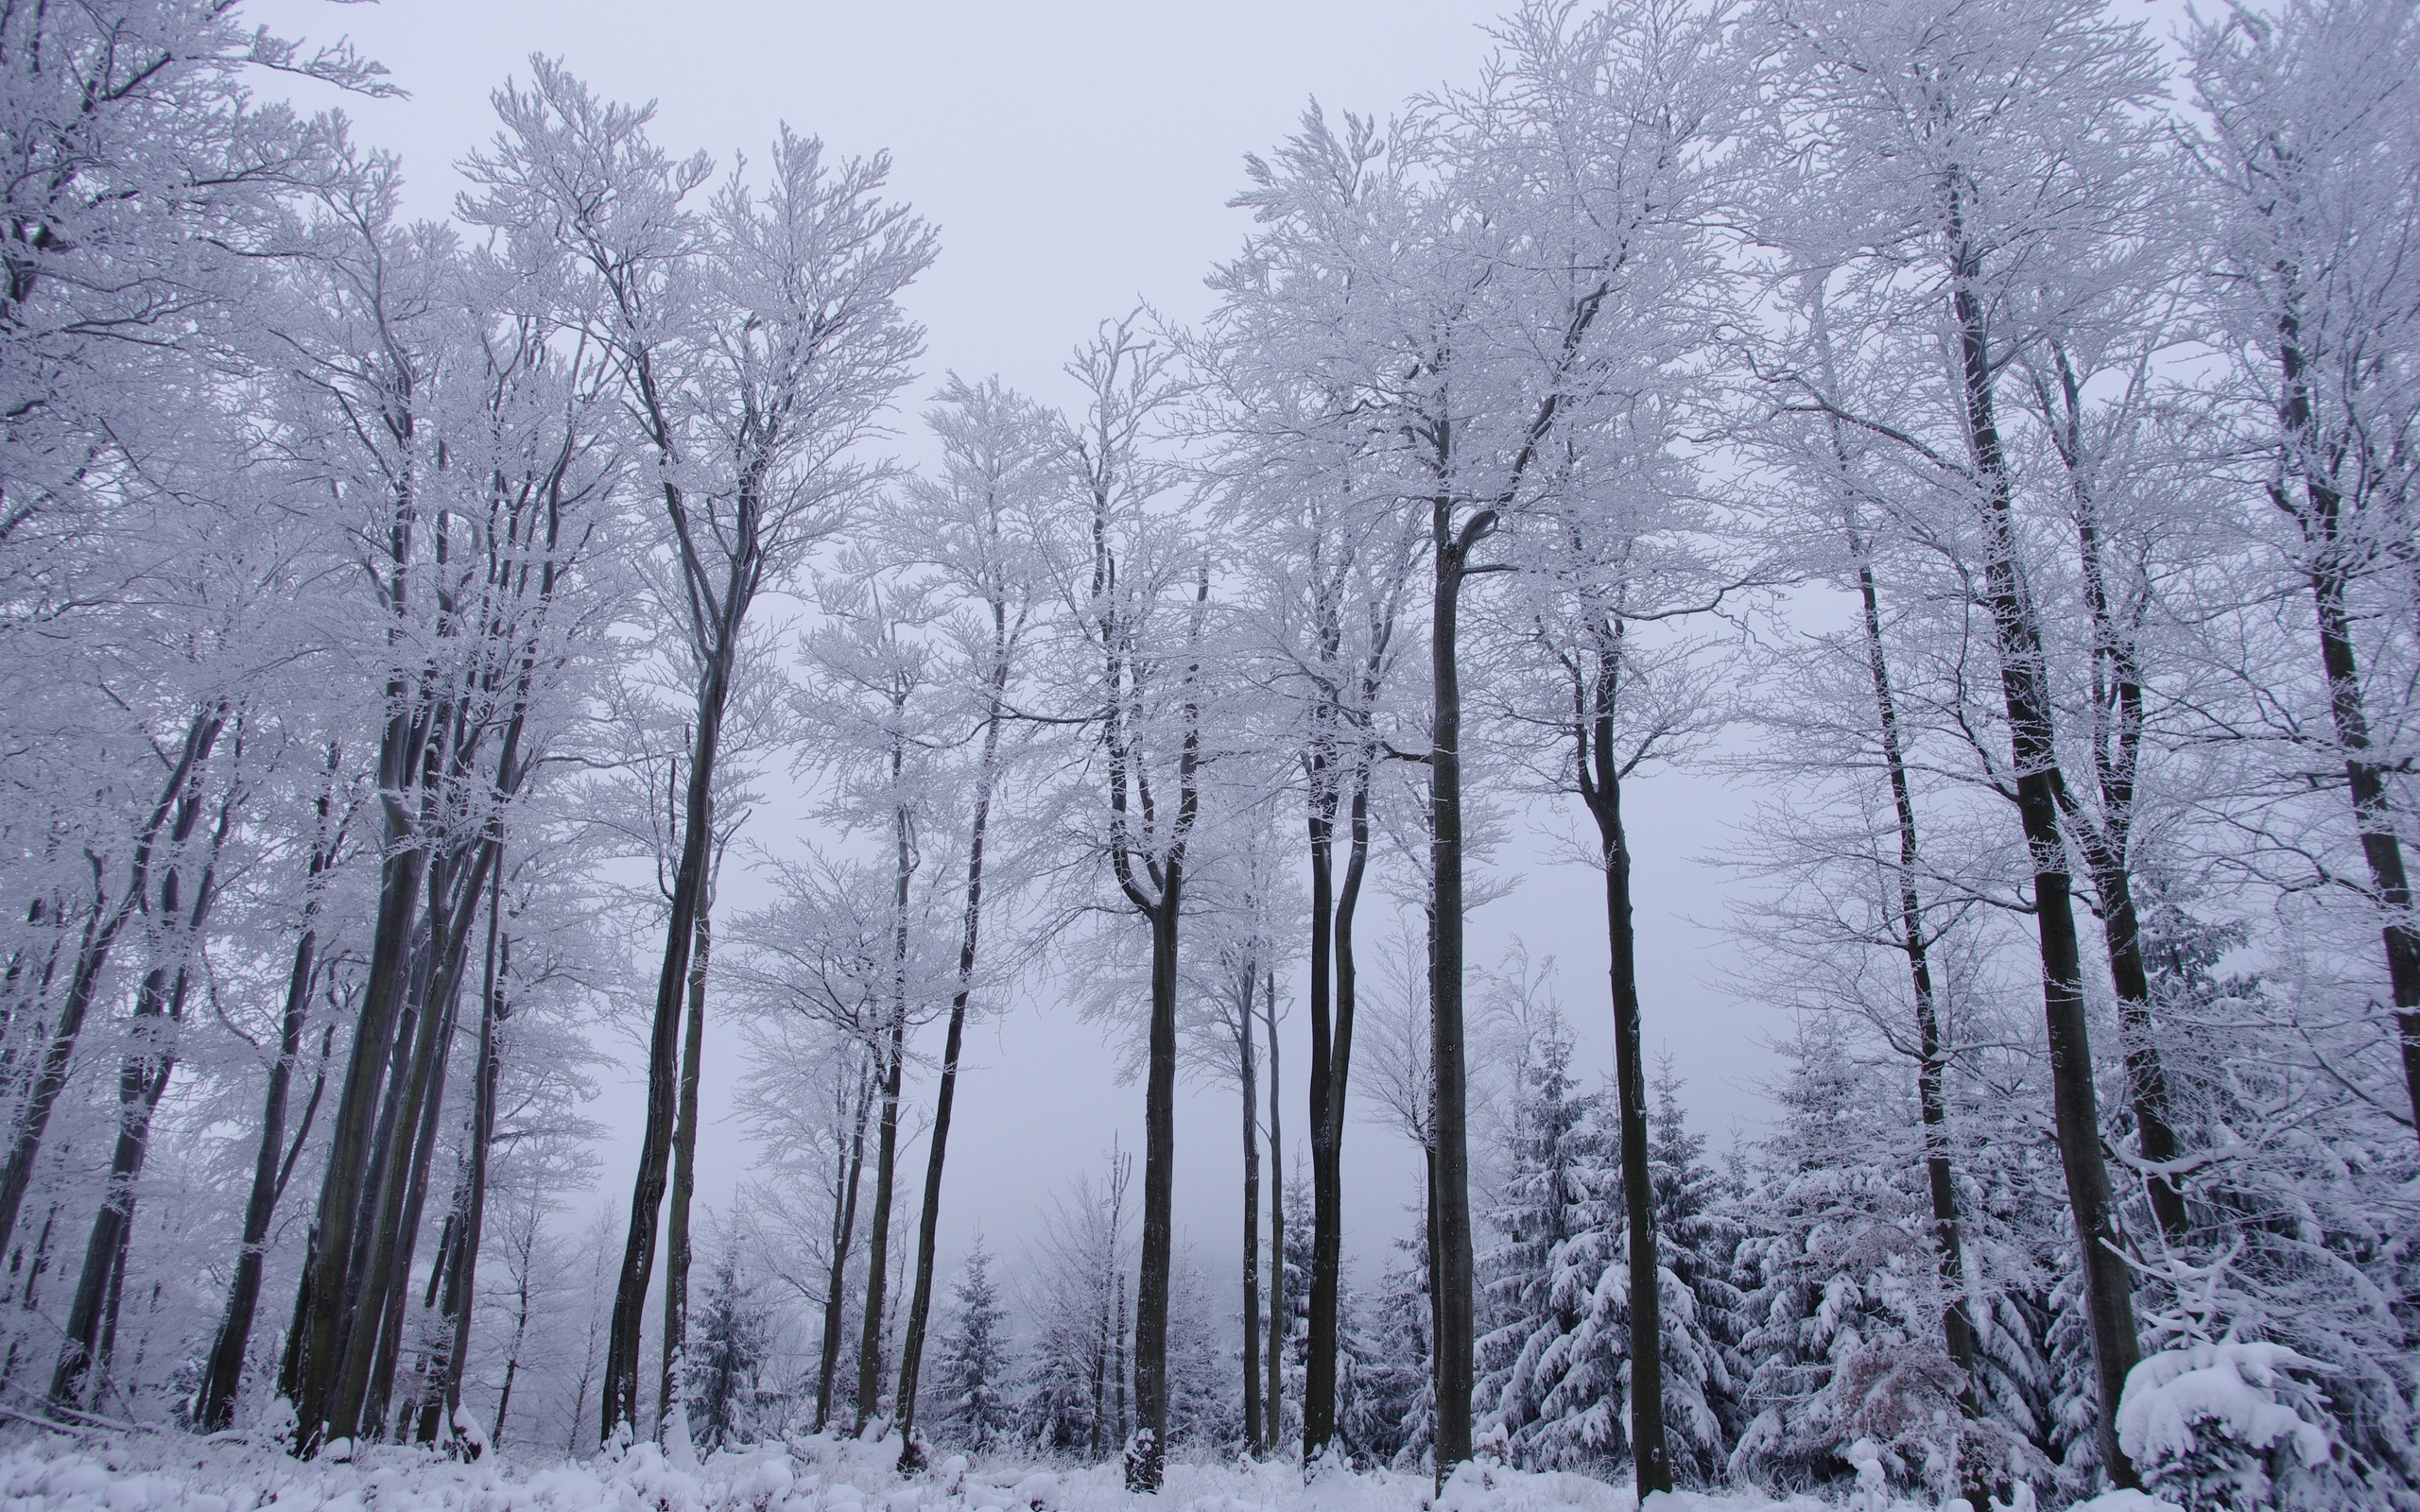 Winter Forest Trees Snow Landscape - Forest Trees In Winter - HD Wallpaper